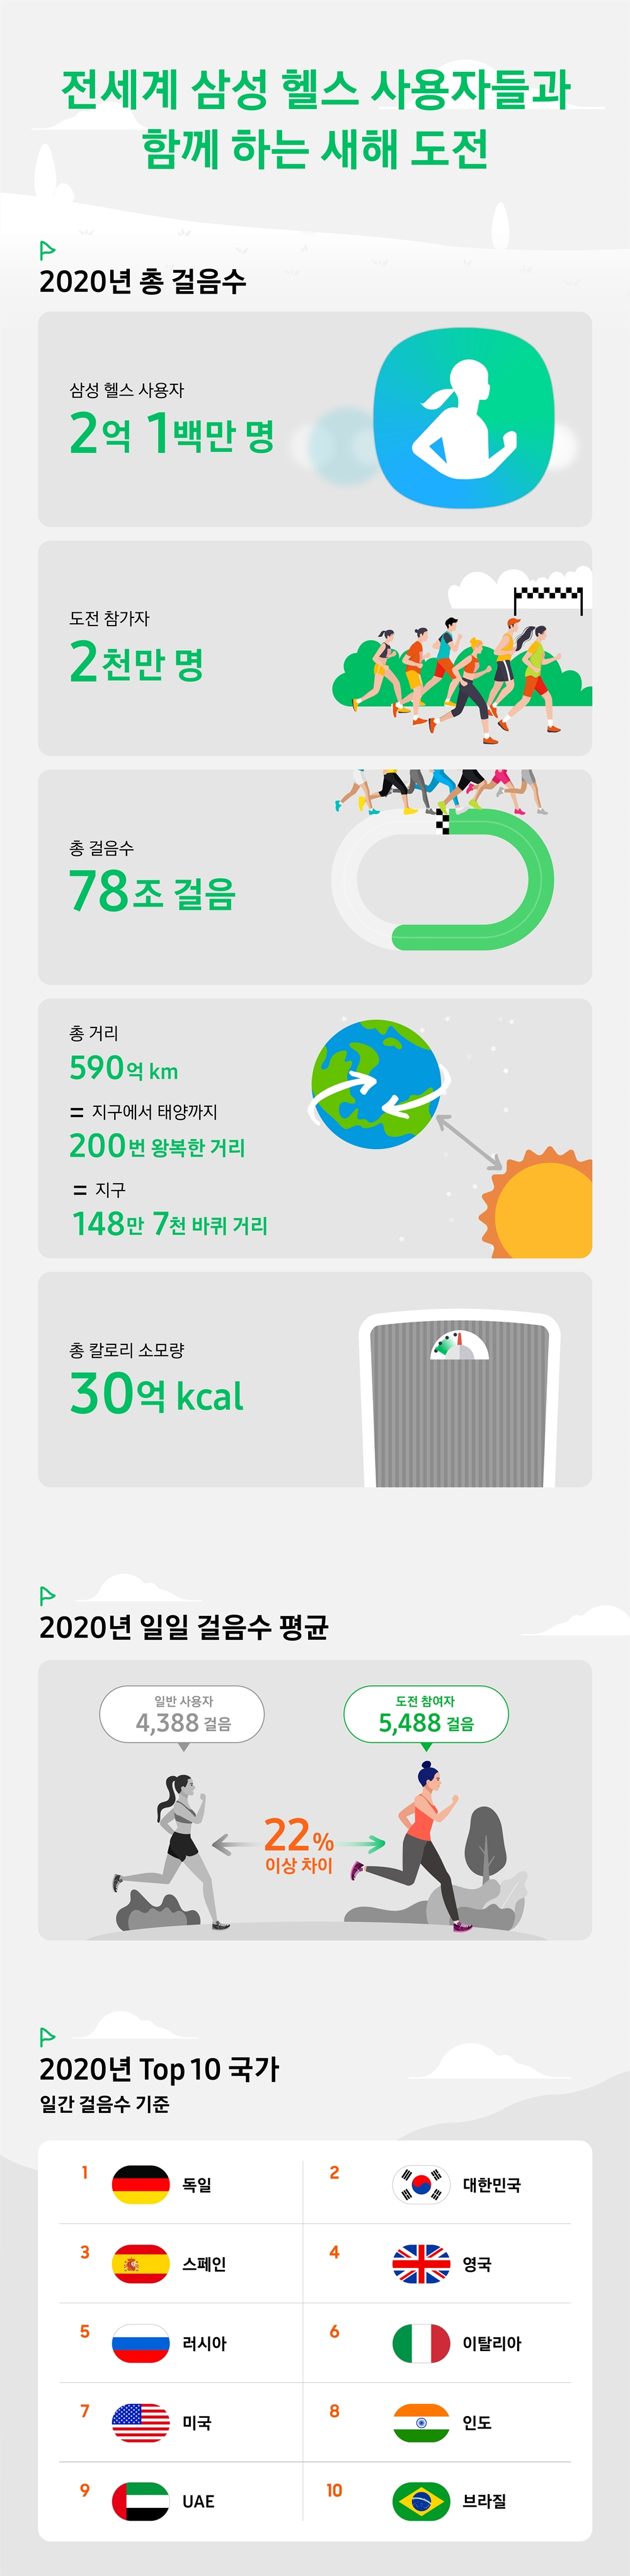 Samsung Health_Group Challenge_Infographic_KR